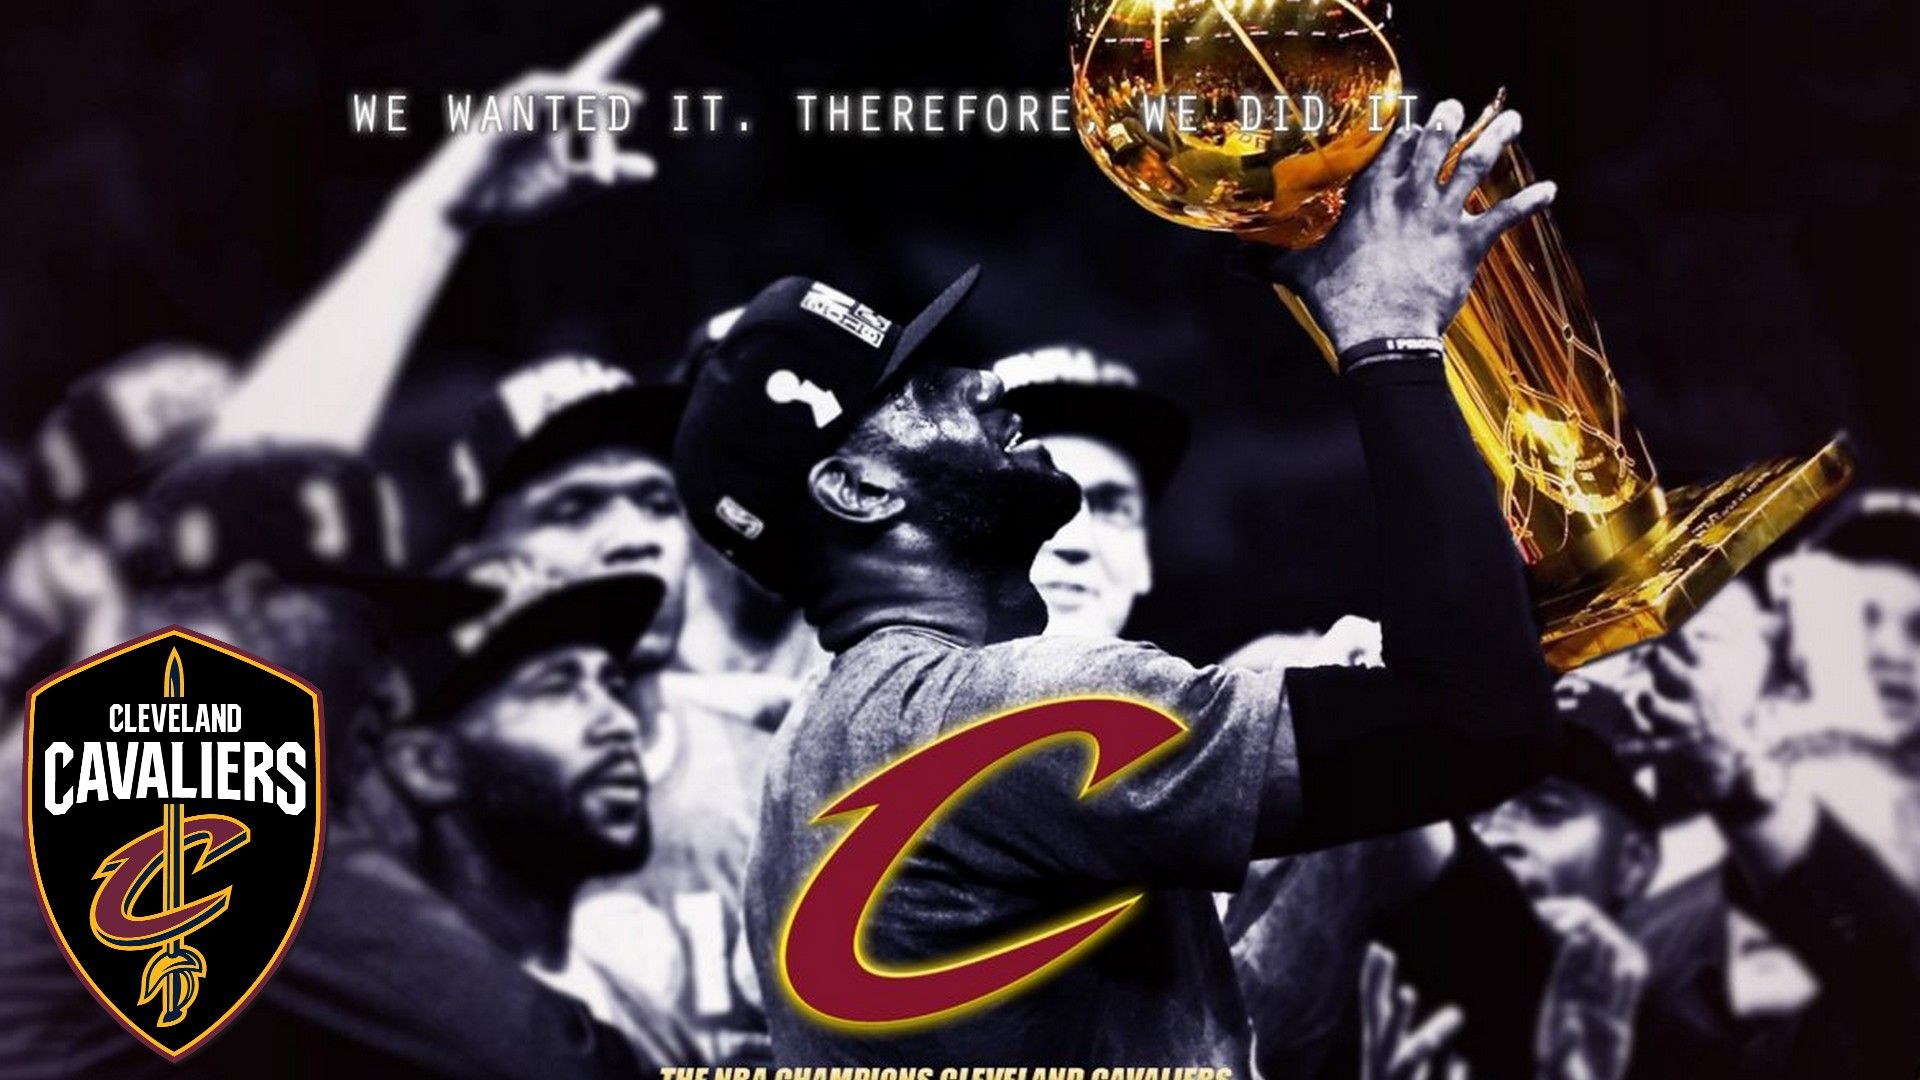 Hd Cleveland Cavaliers Nba Backgrounds Basketball Wallpapers